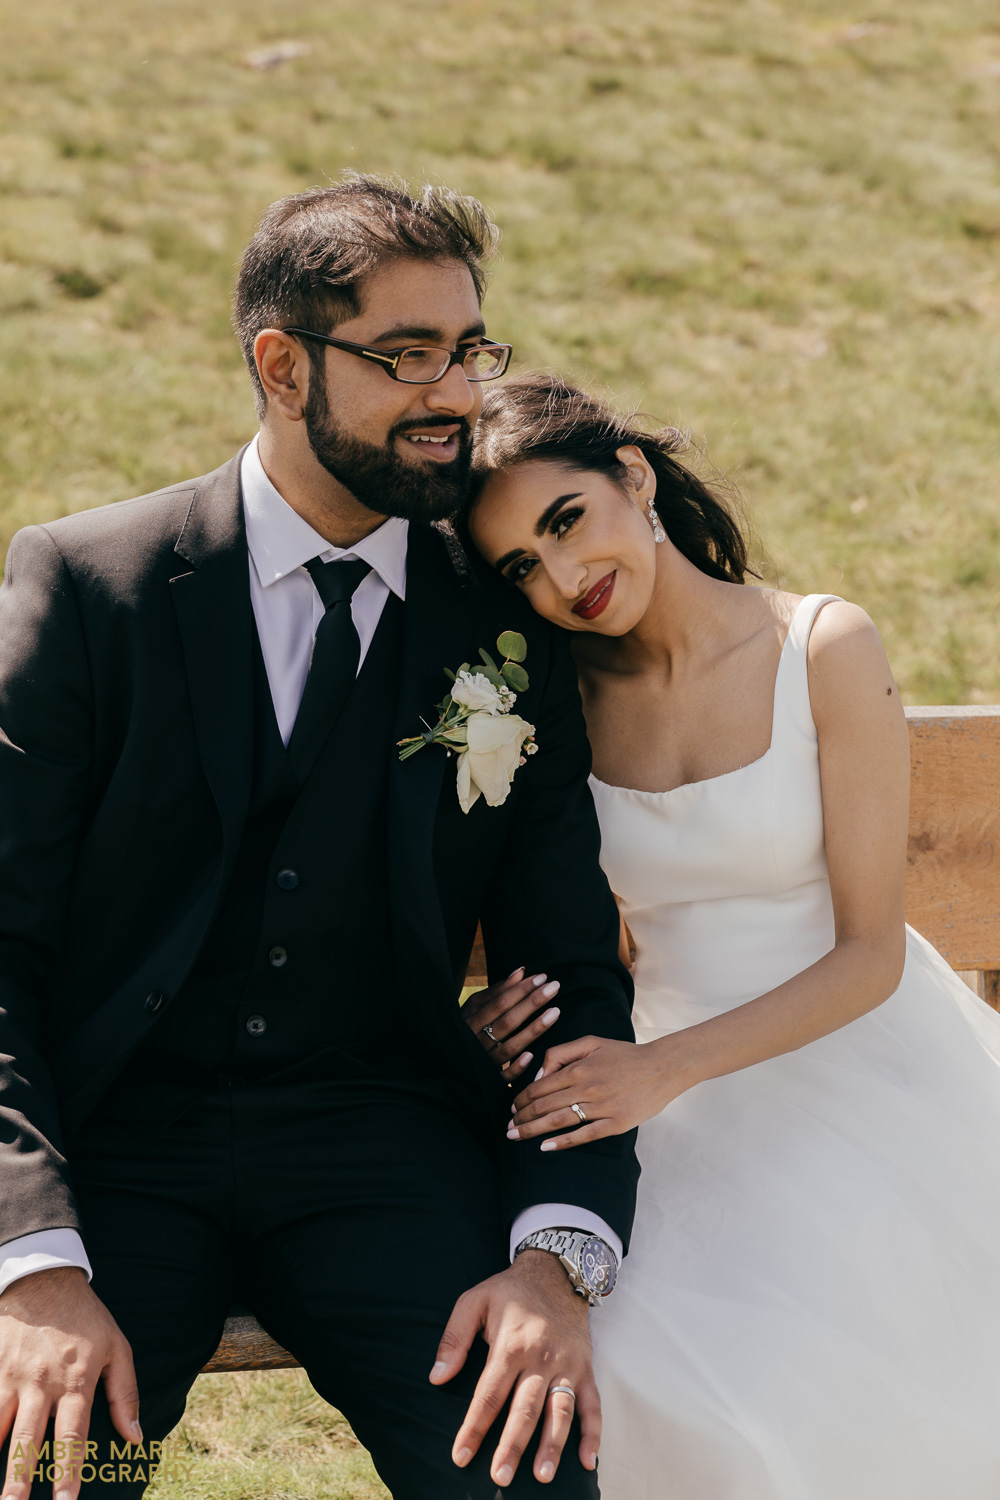 Stylish portrait of bride and groom sat on bench